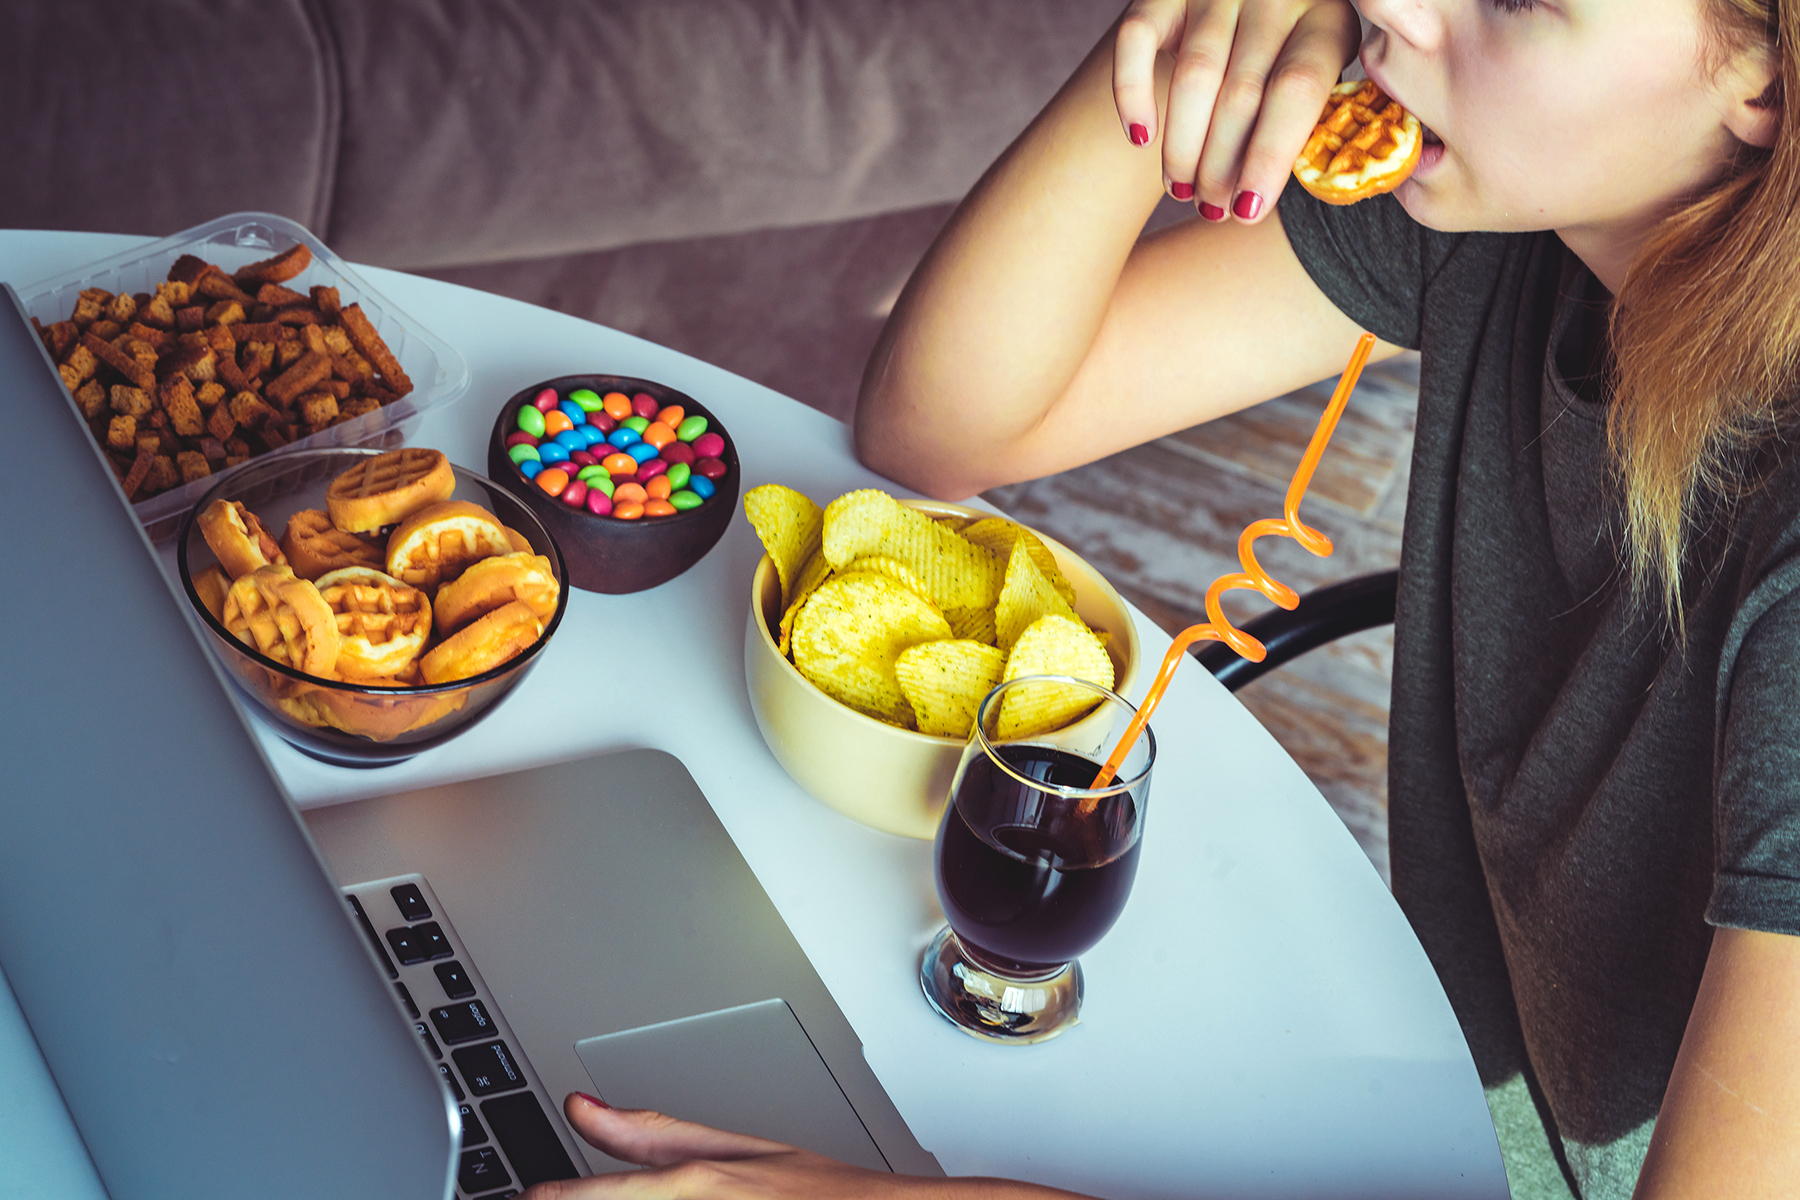 Emotional Eating From Stress: How to Stop It